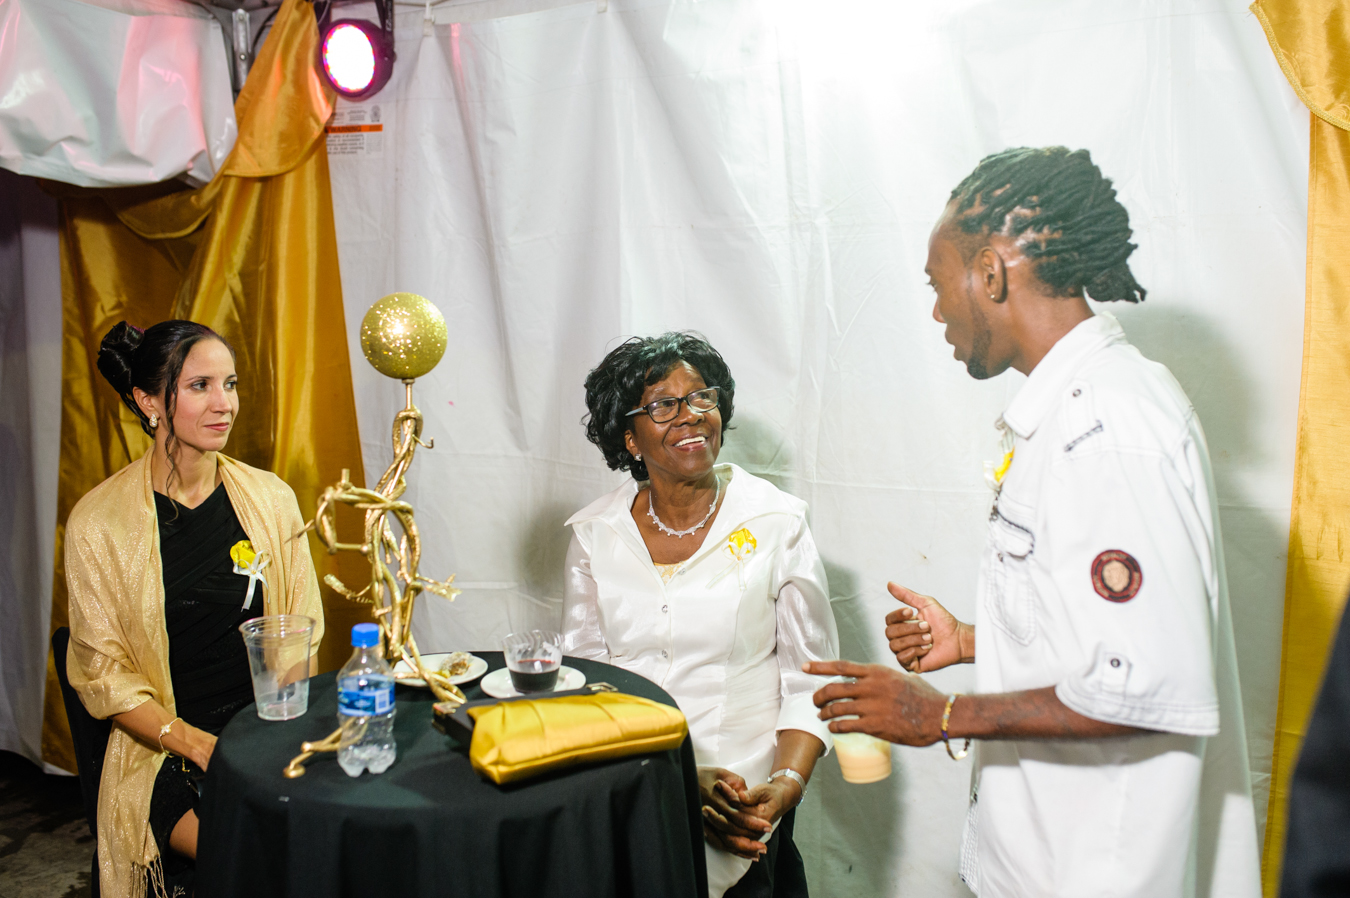 office of the mayor team members shine at gala awards saint lucia news. Black Bedroom Furniture Sets. Home Design Ideas